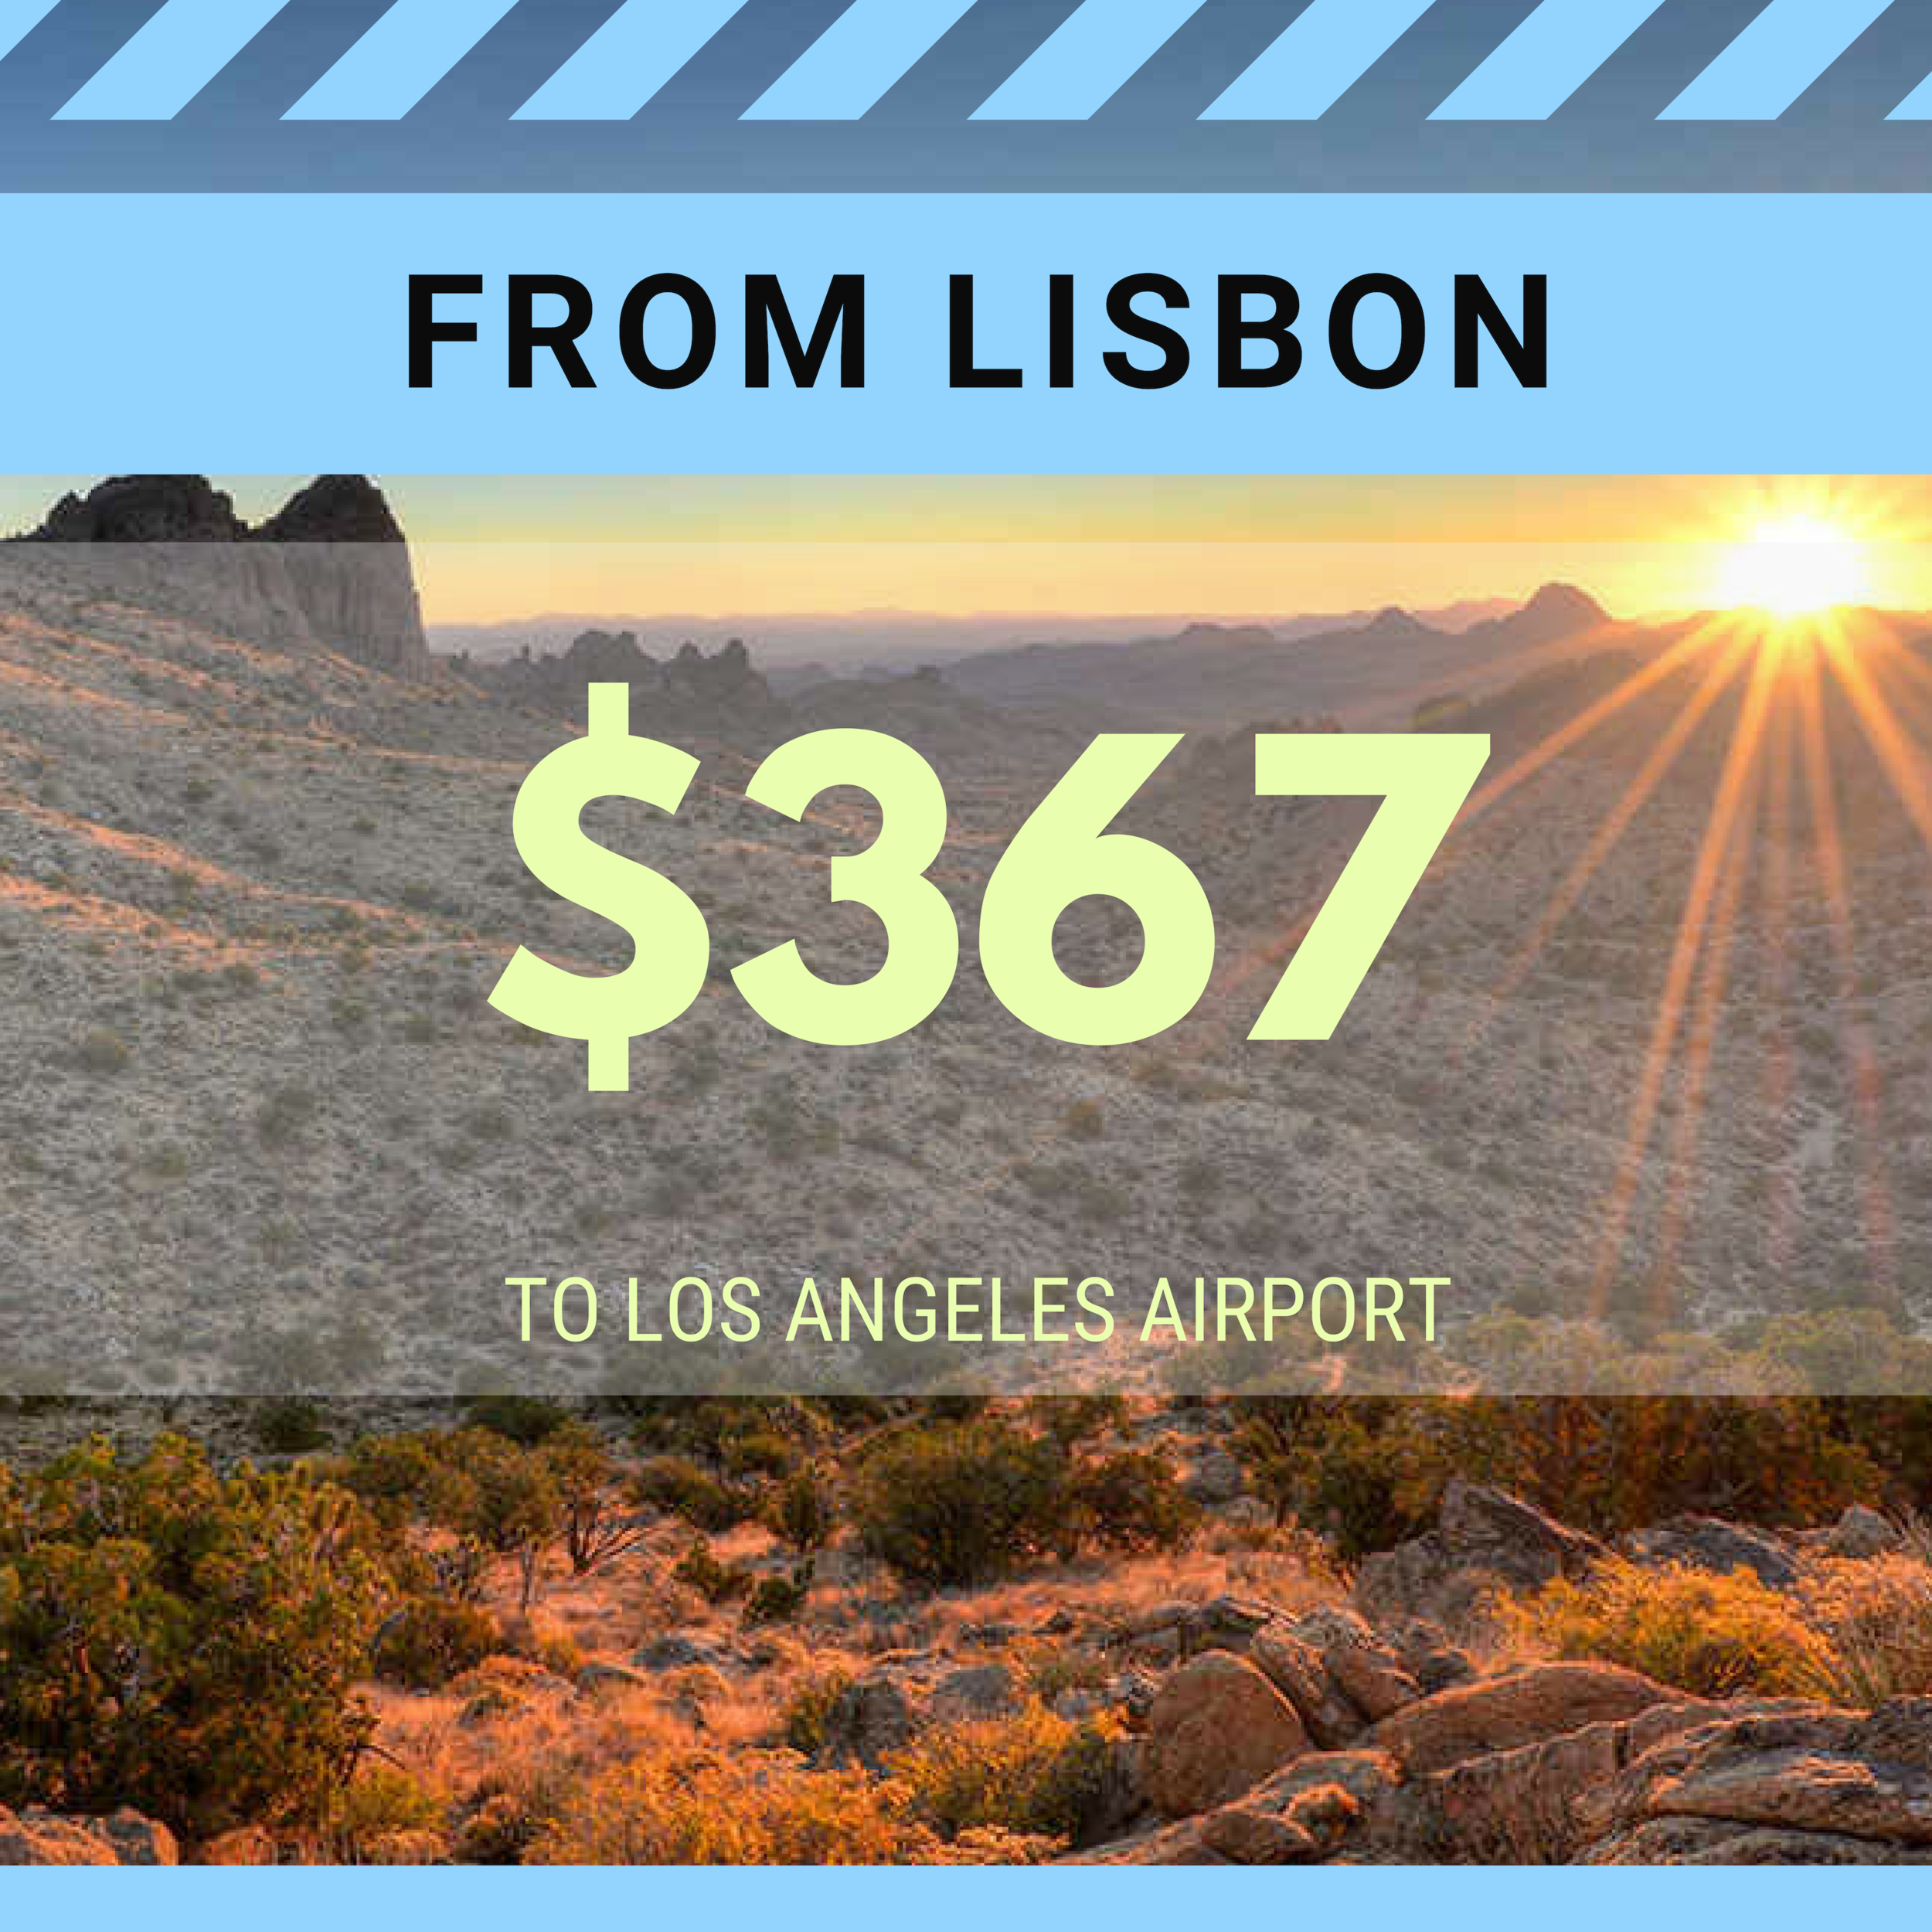 FROM LISBON TO LAX